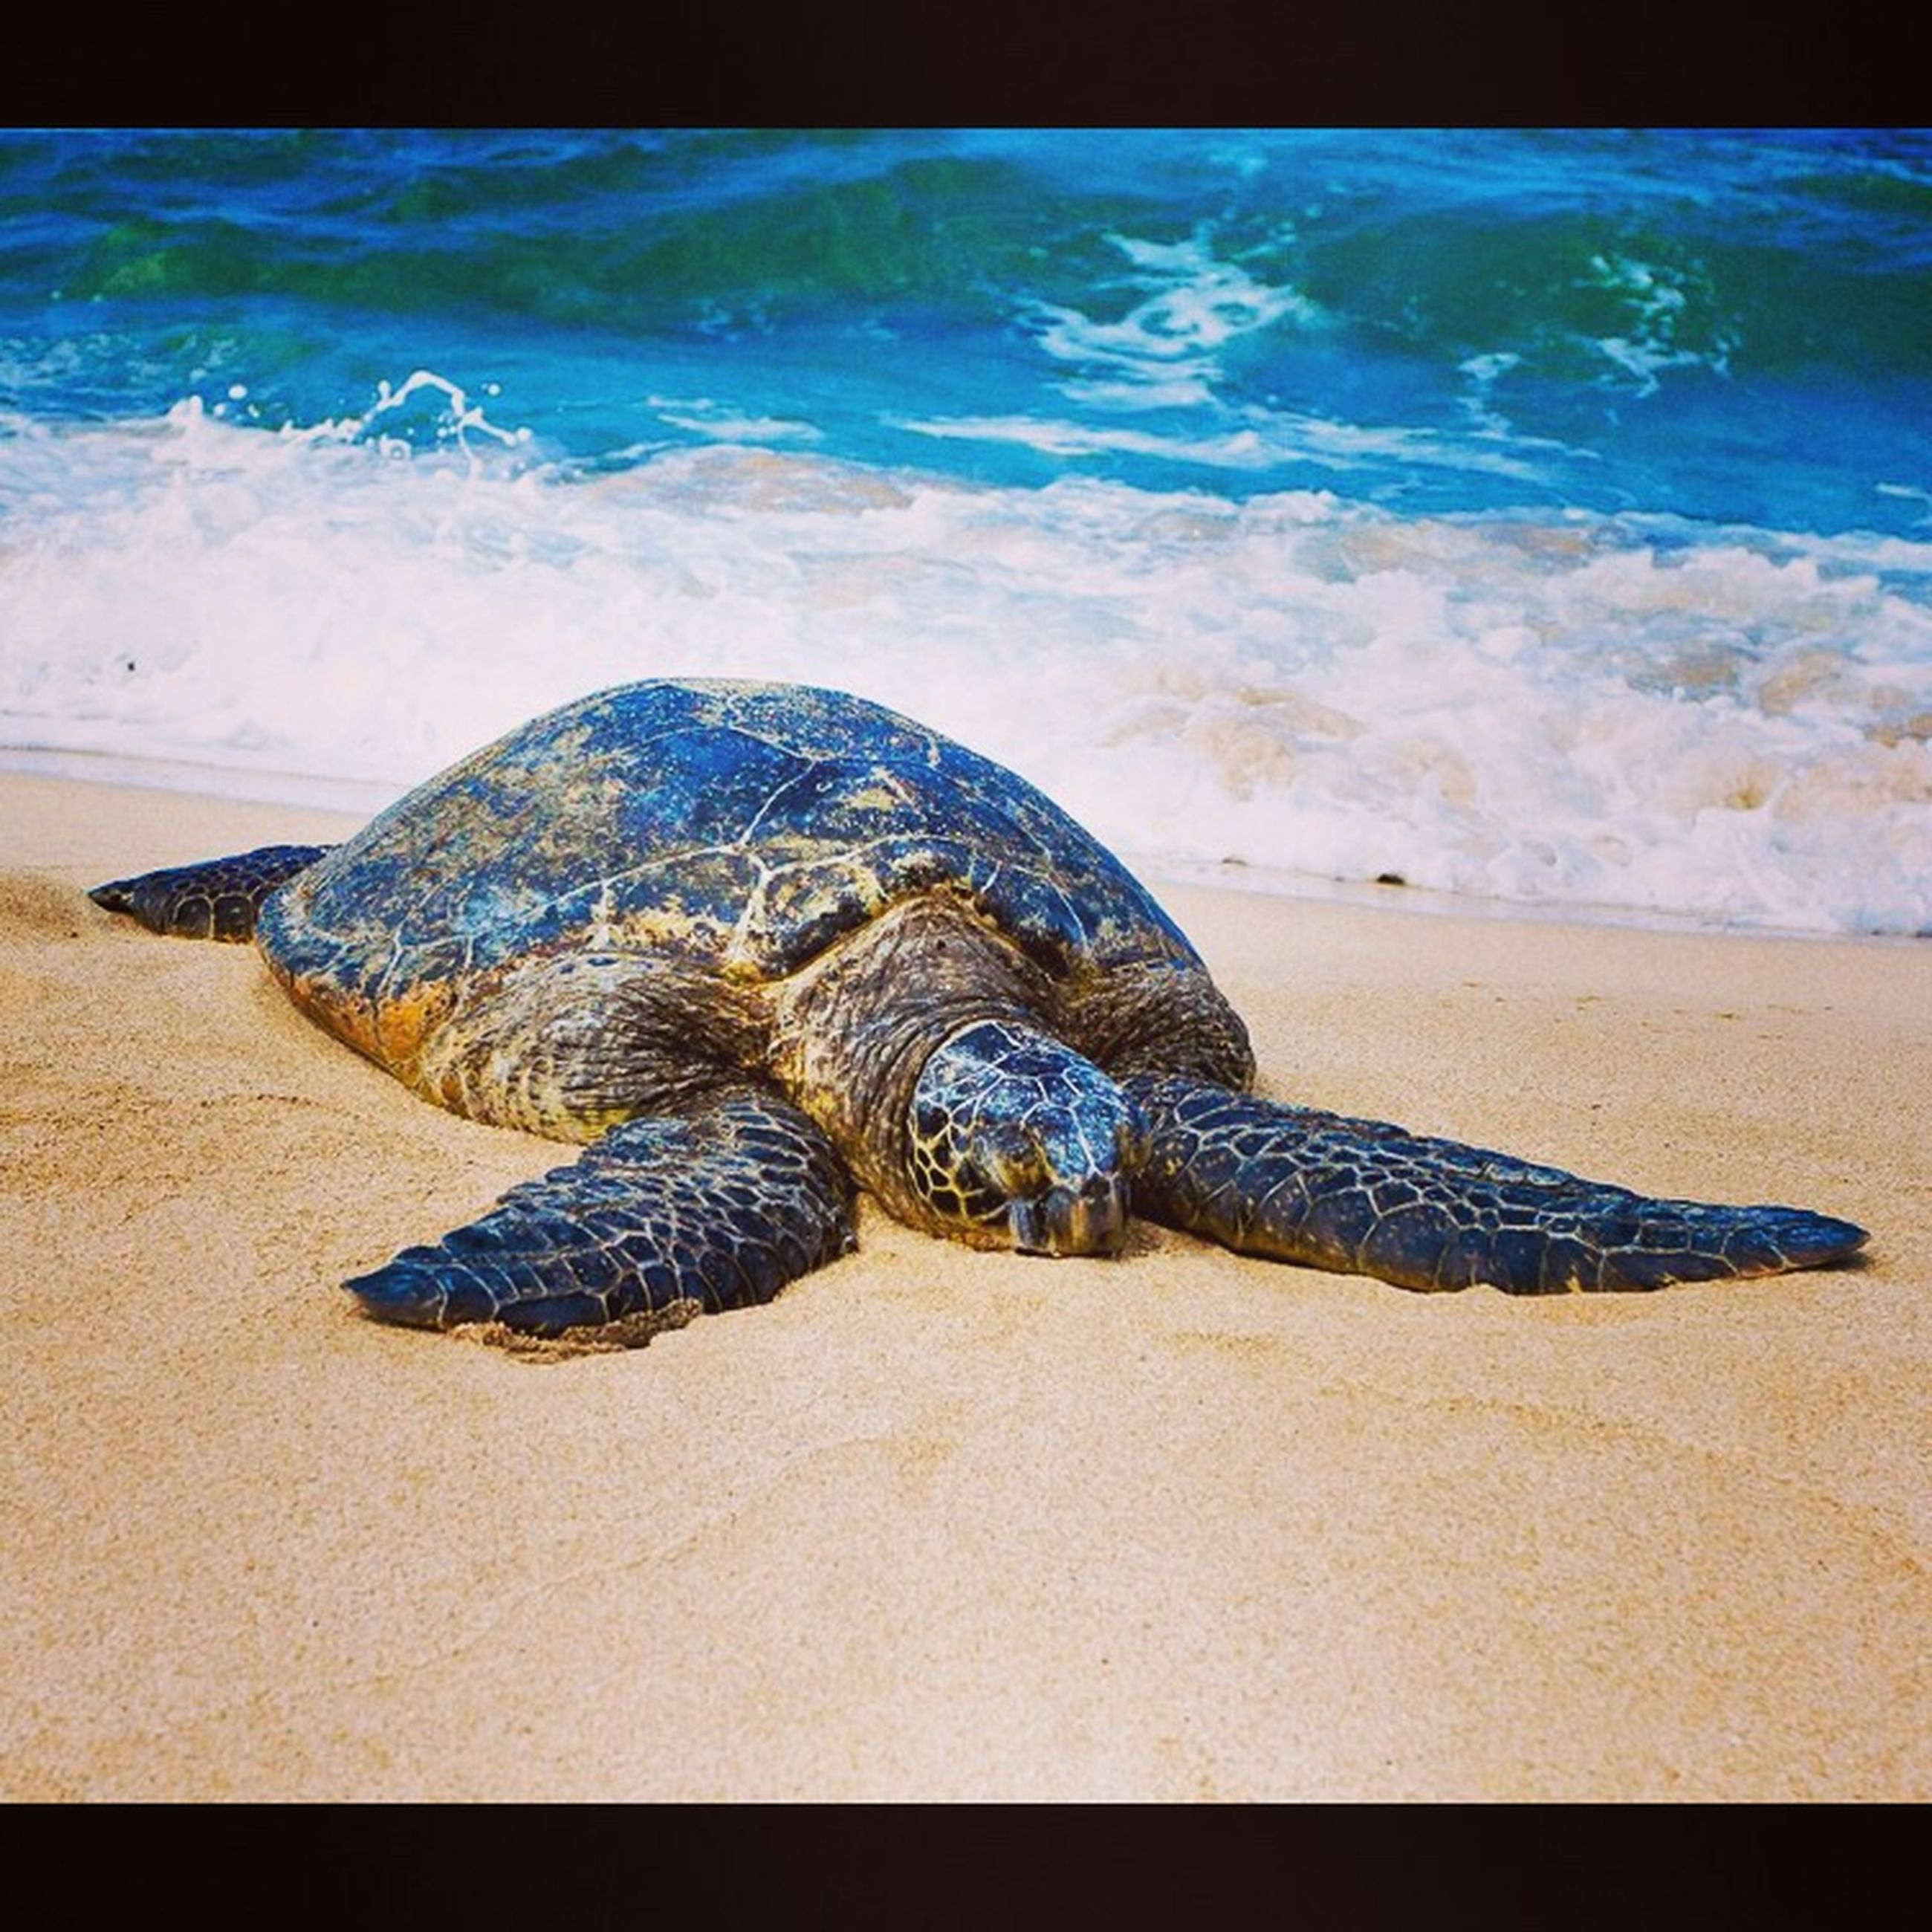 water, sea, animal themes, one animal, beach, animals in the wild, wildlife, sand, sea life, blue, shore, swimming, high angle view, nature, animal shell, reptile, turtle, beauty in nature, day, outdoors